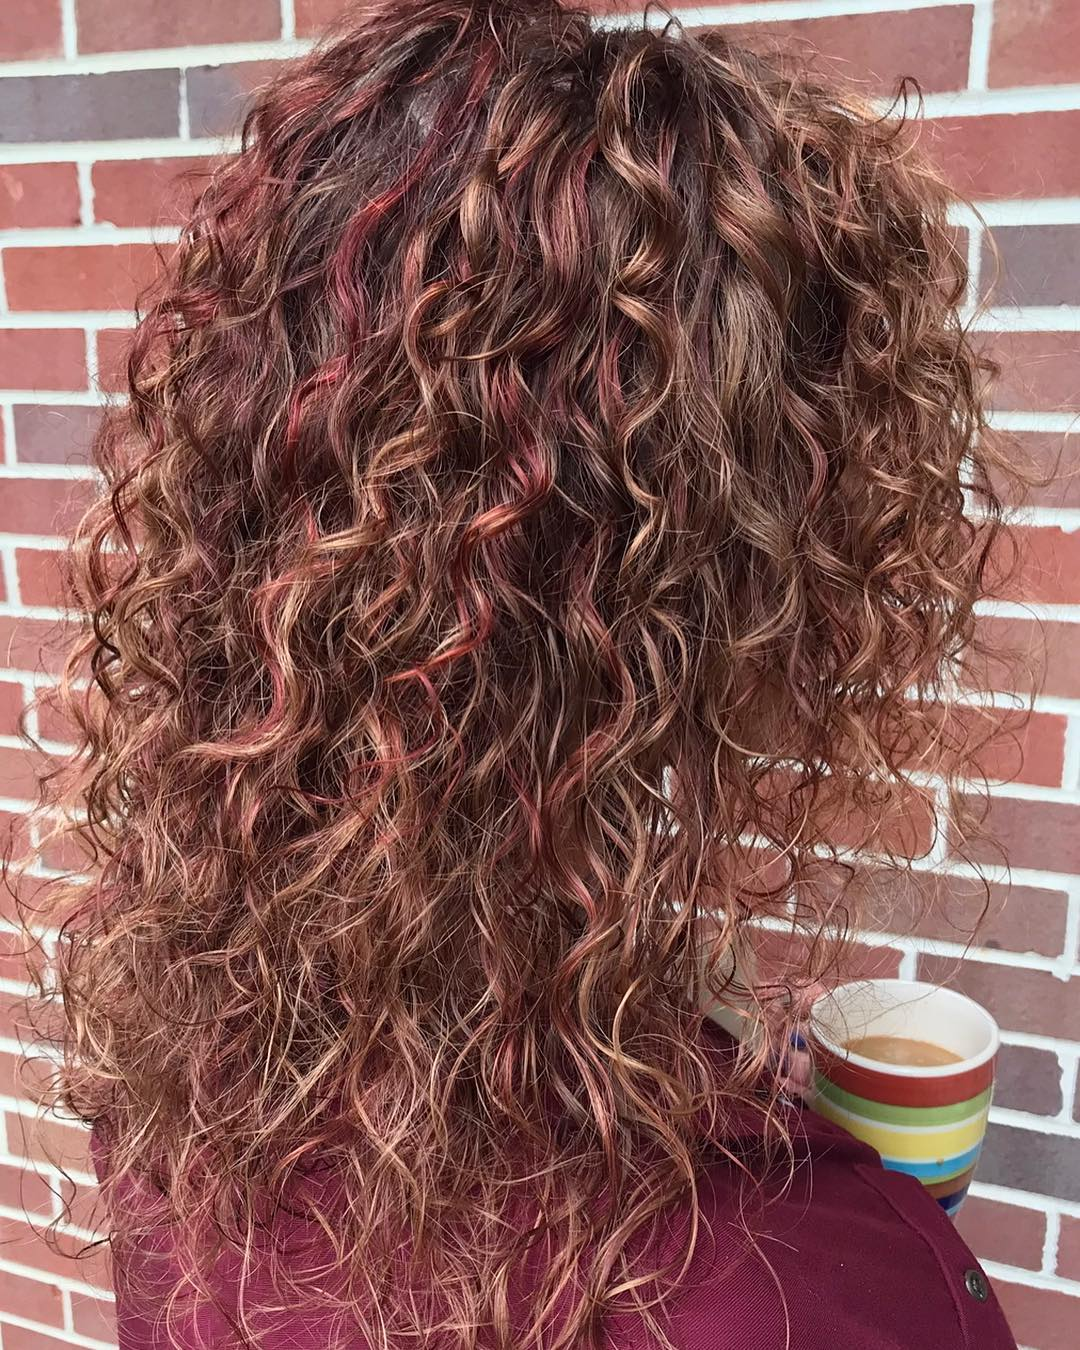 Curly Dark Auburn Hair Color With Lowlights